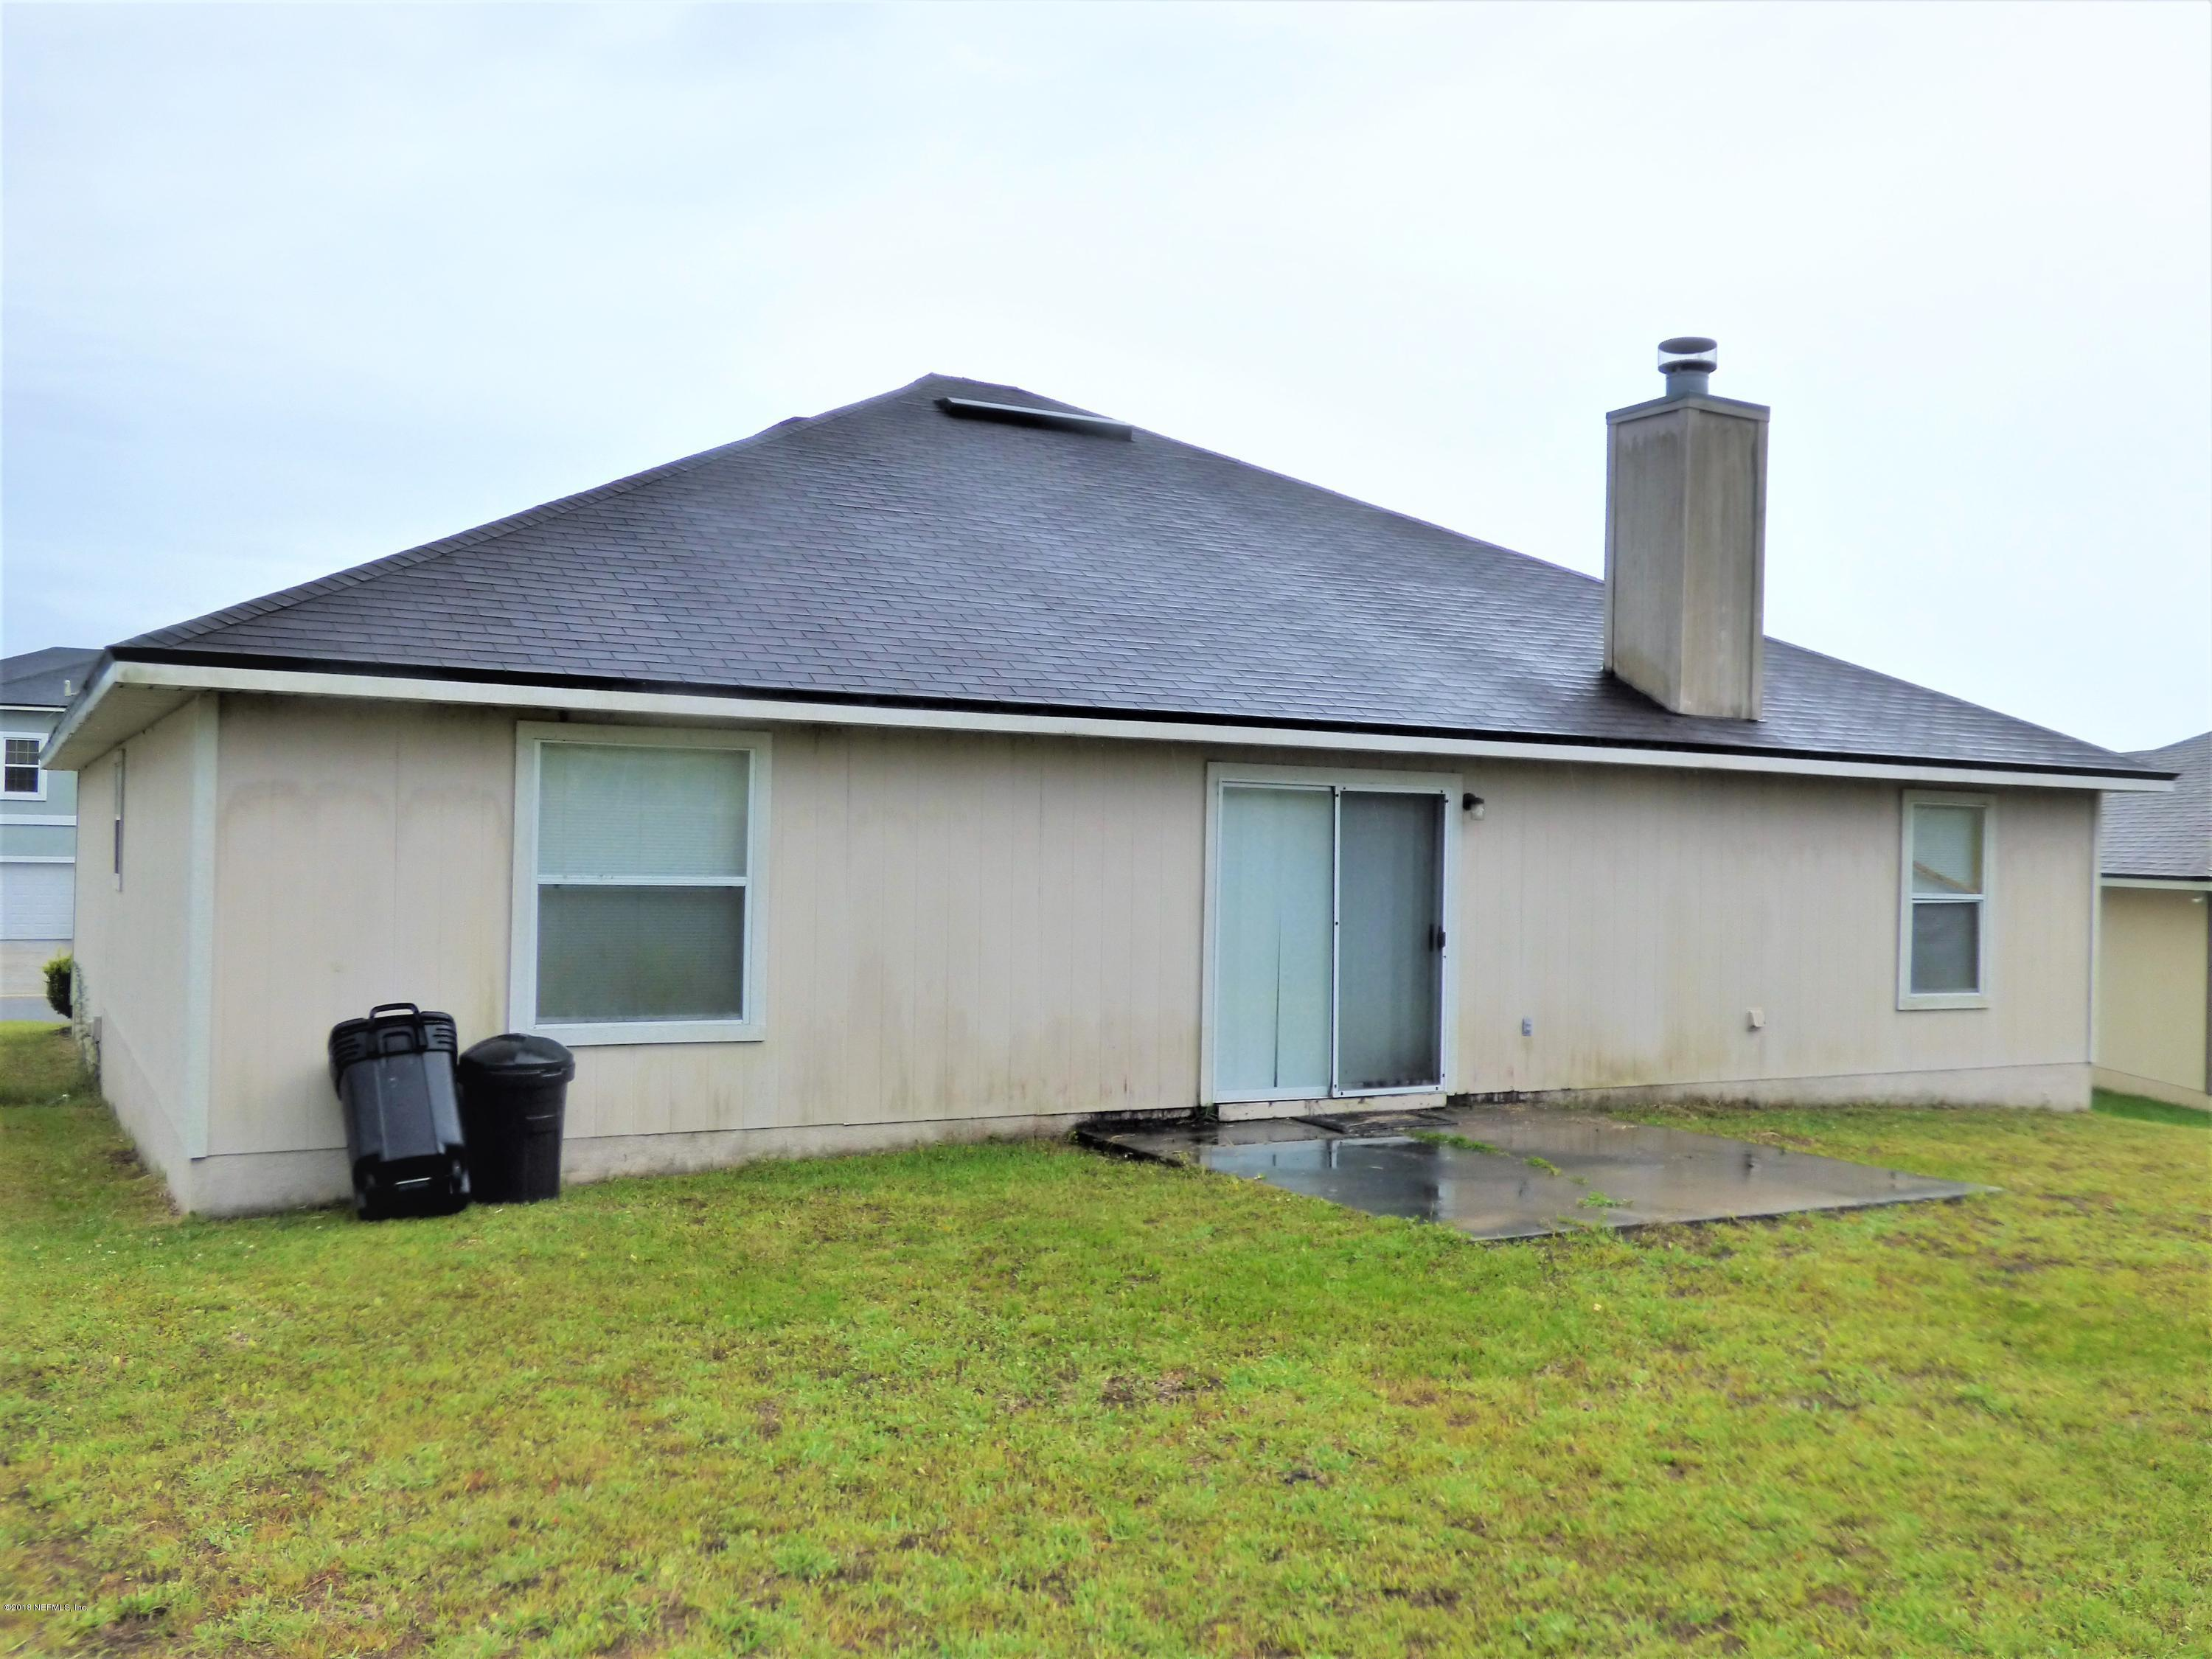 3108 ZEYNO, MIDDLEBURG, FLORIDA 32068, 3 Bedrooms Bedrooms, ,2 BathroomsBathrooms,Residential - single family,For sale,ZEYNO,937088